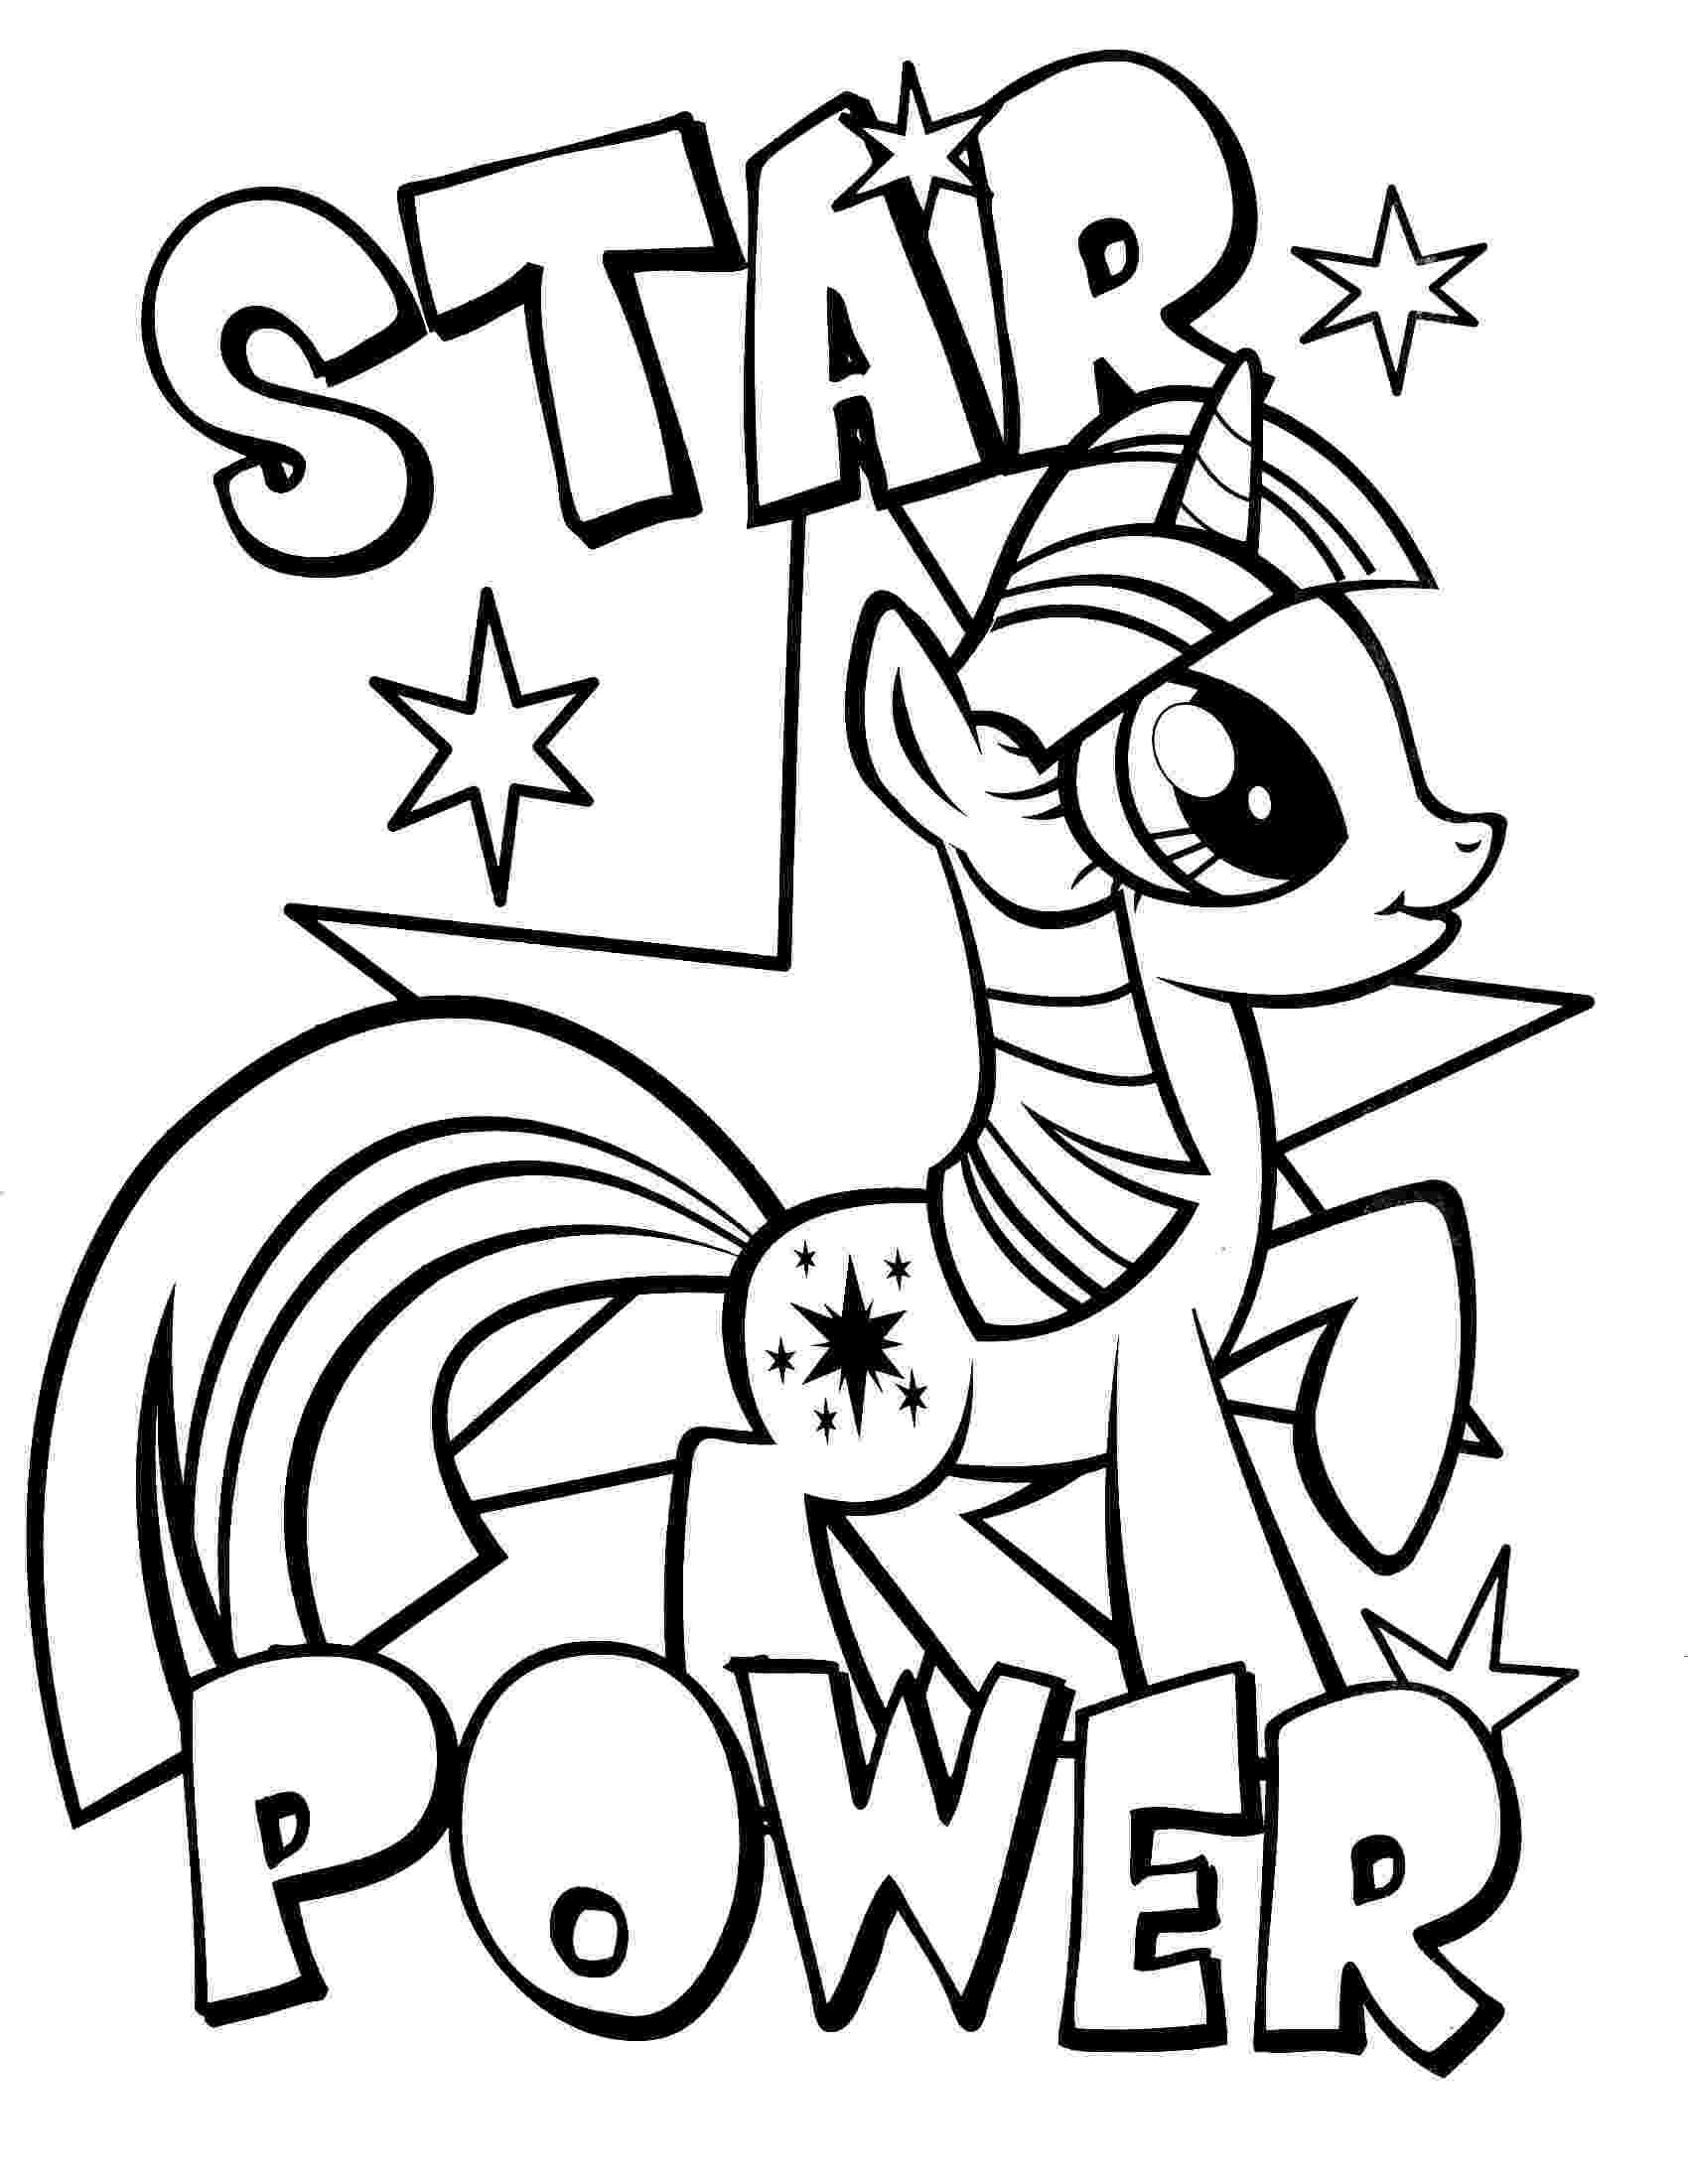 my little pony colors free printable my little pony coloring pages for kids my little pony colors my